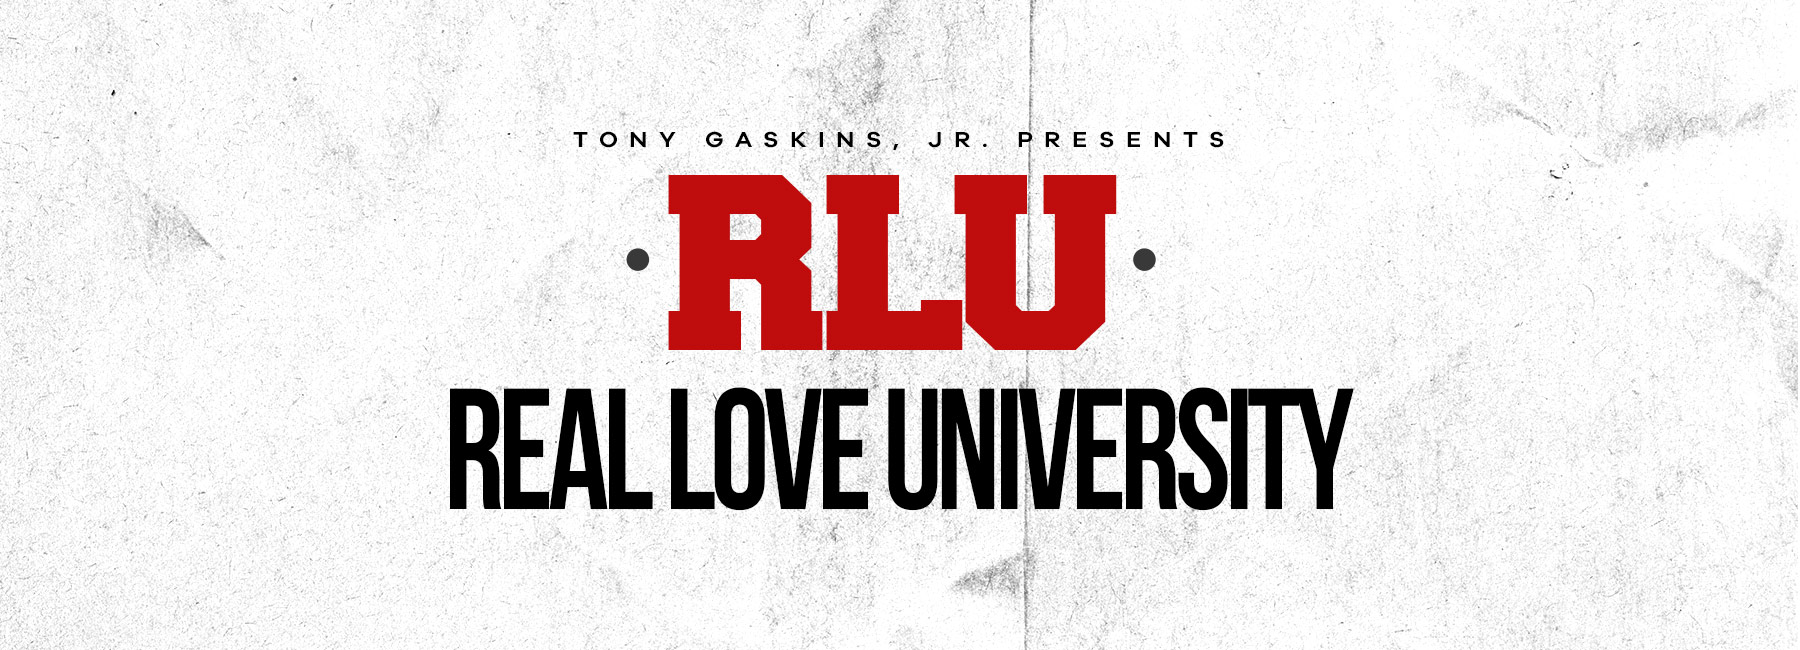 Self-Love & Real Love Course | Tony Gaskins Motivational Speaker